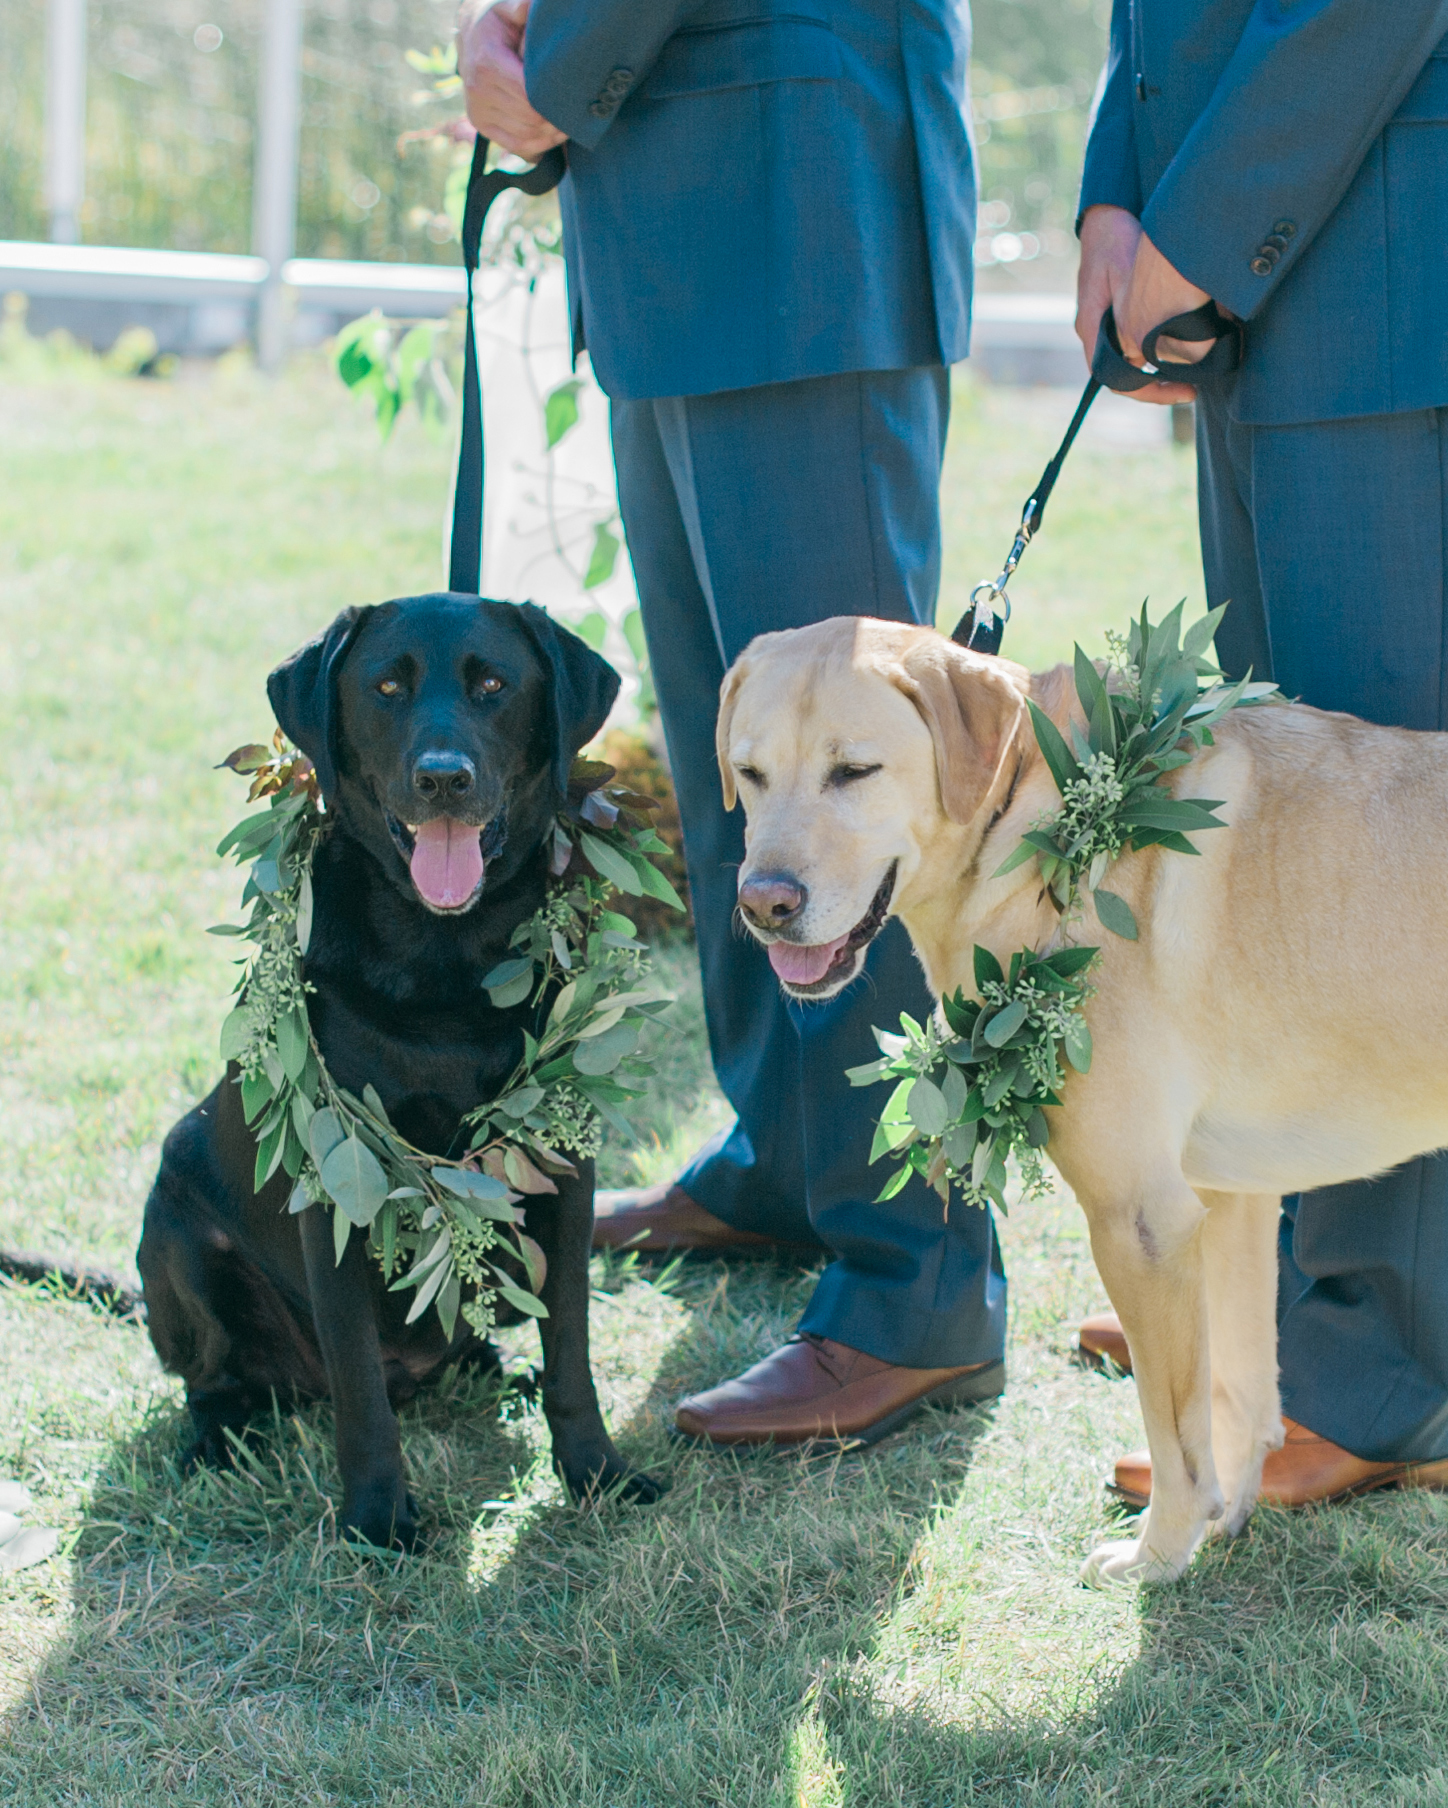 robin-kenny-wedding-dogs-114-s112068-0715.jpg